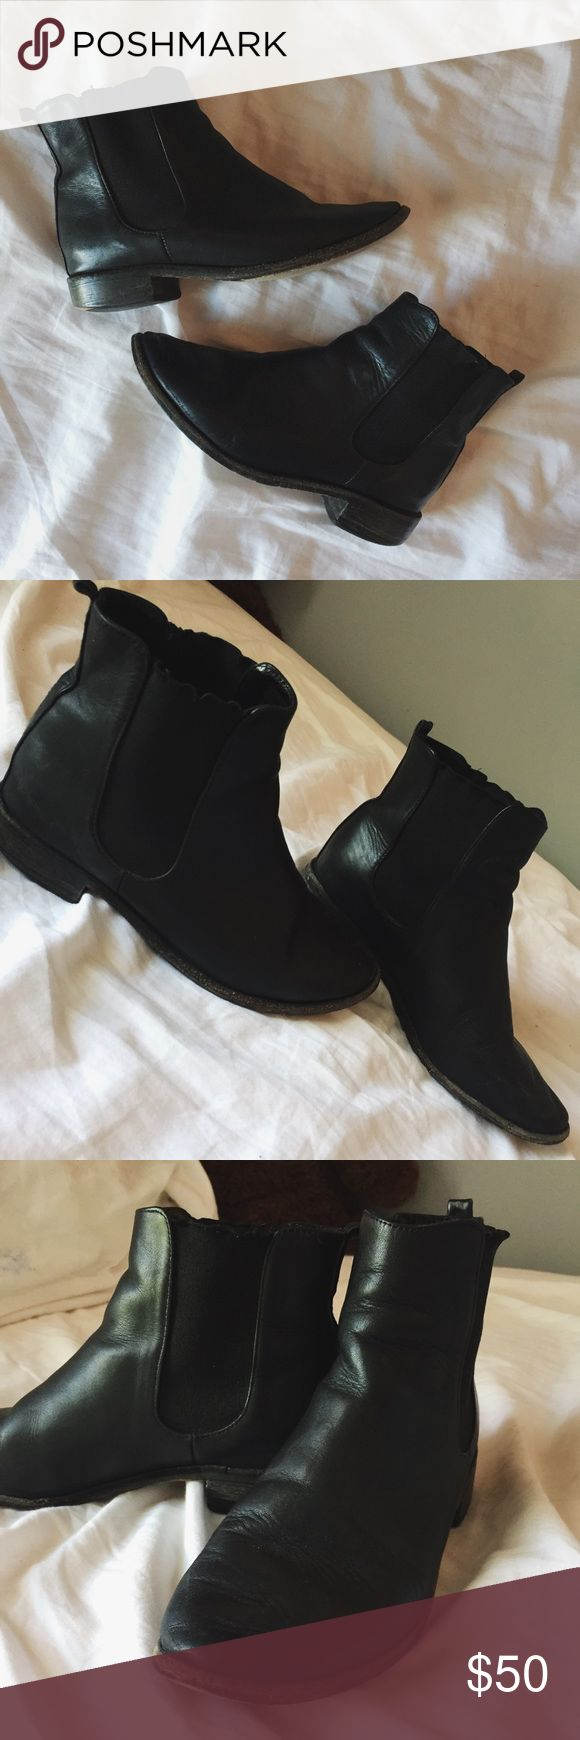 American Apparel Chelsea Boots. Black Chelsea Boots. Wood bottoms. These were my favorite Boots and I hate to part with them but they still have so much life to them. Size 6. American Apparel Shoes Ankle Boots & Booties